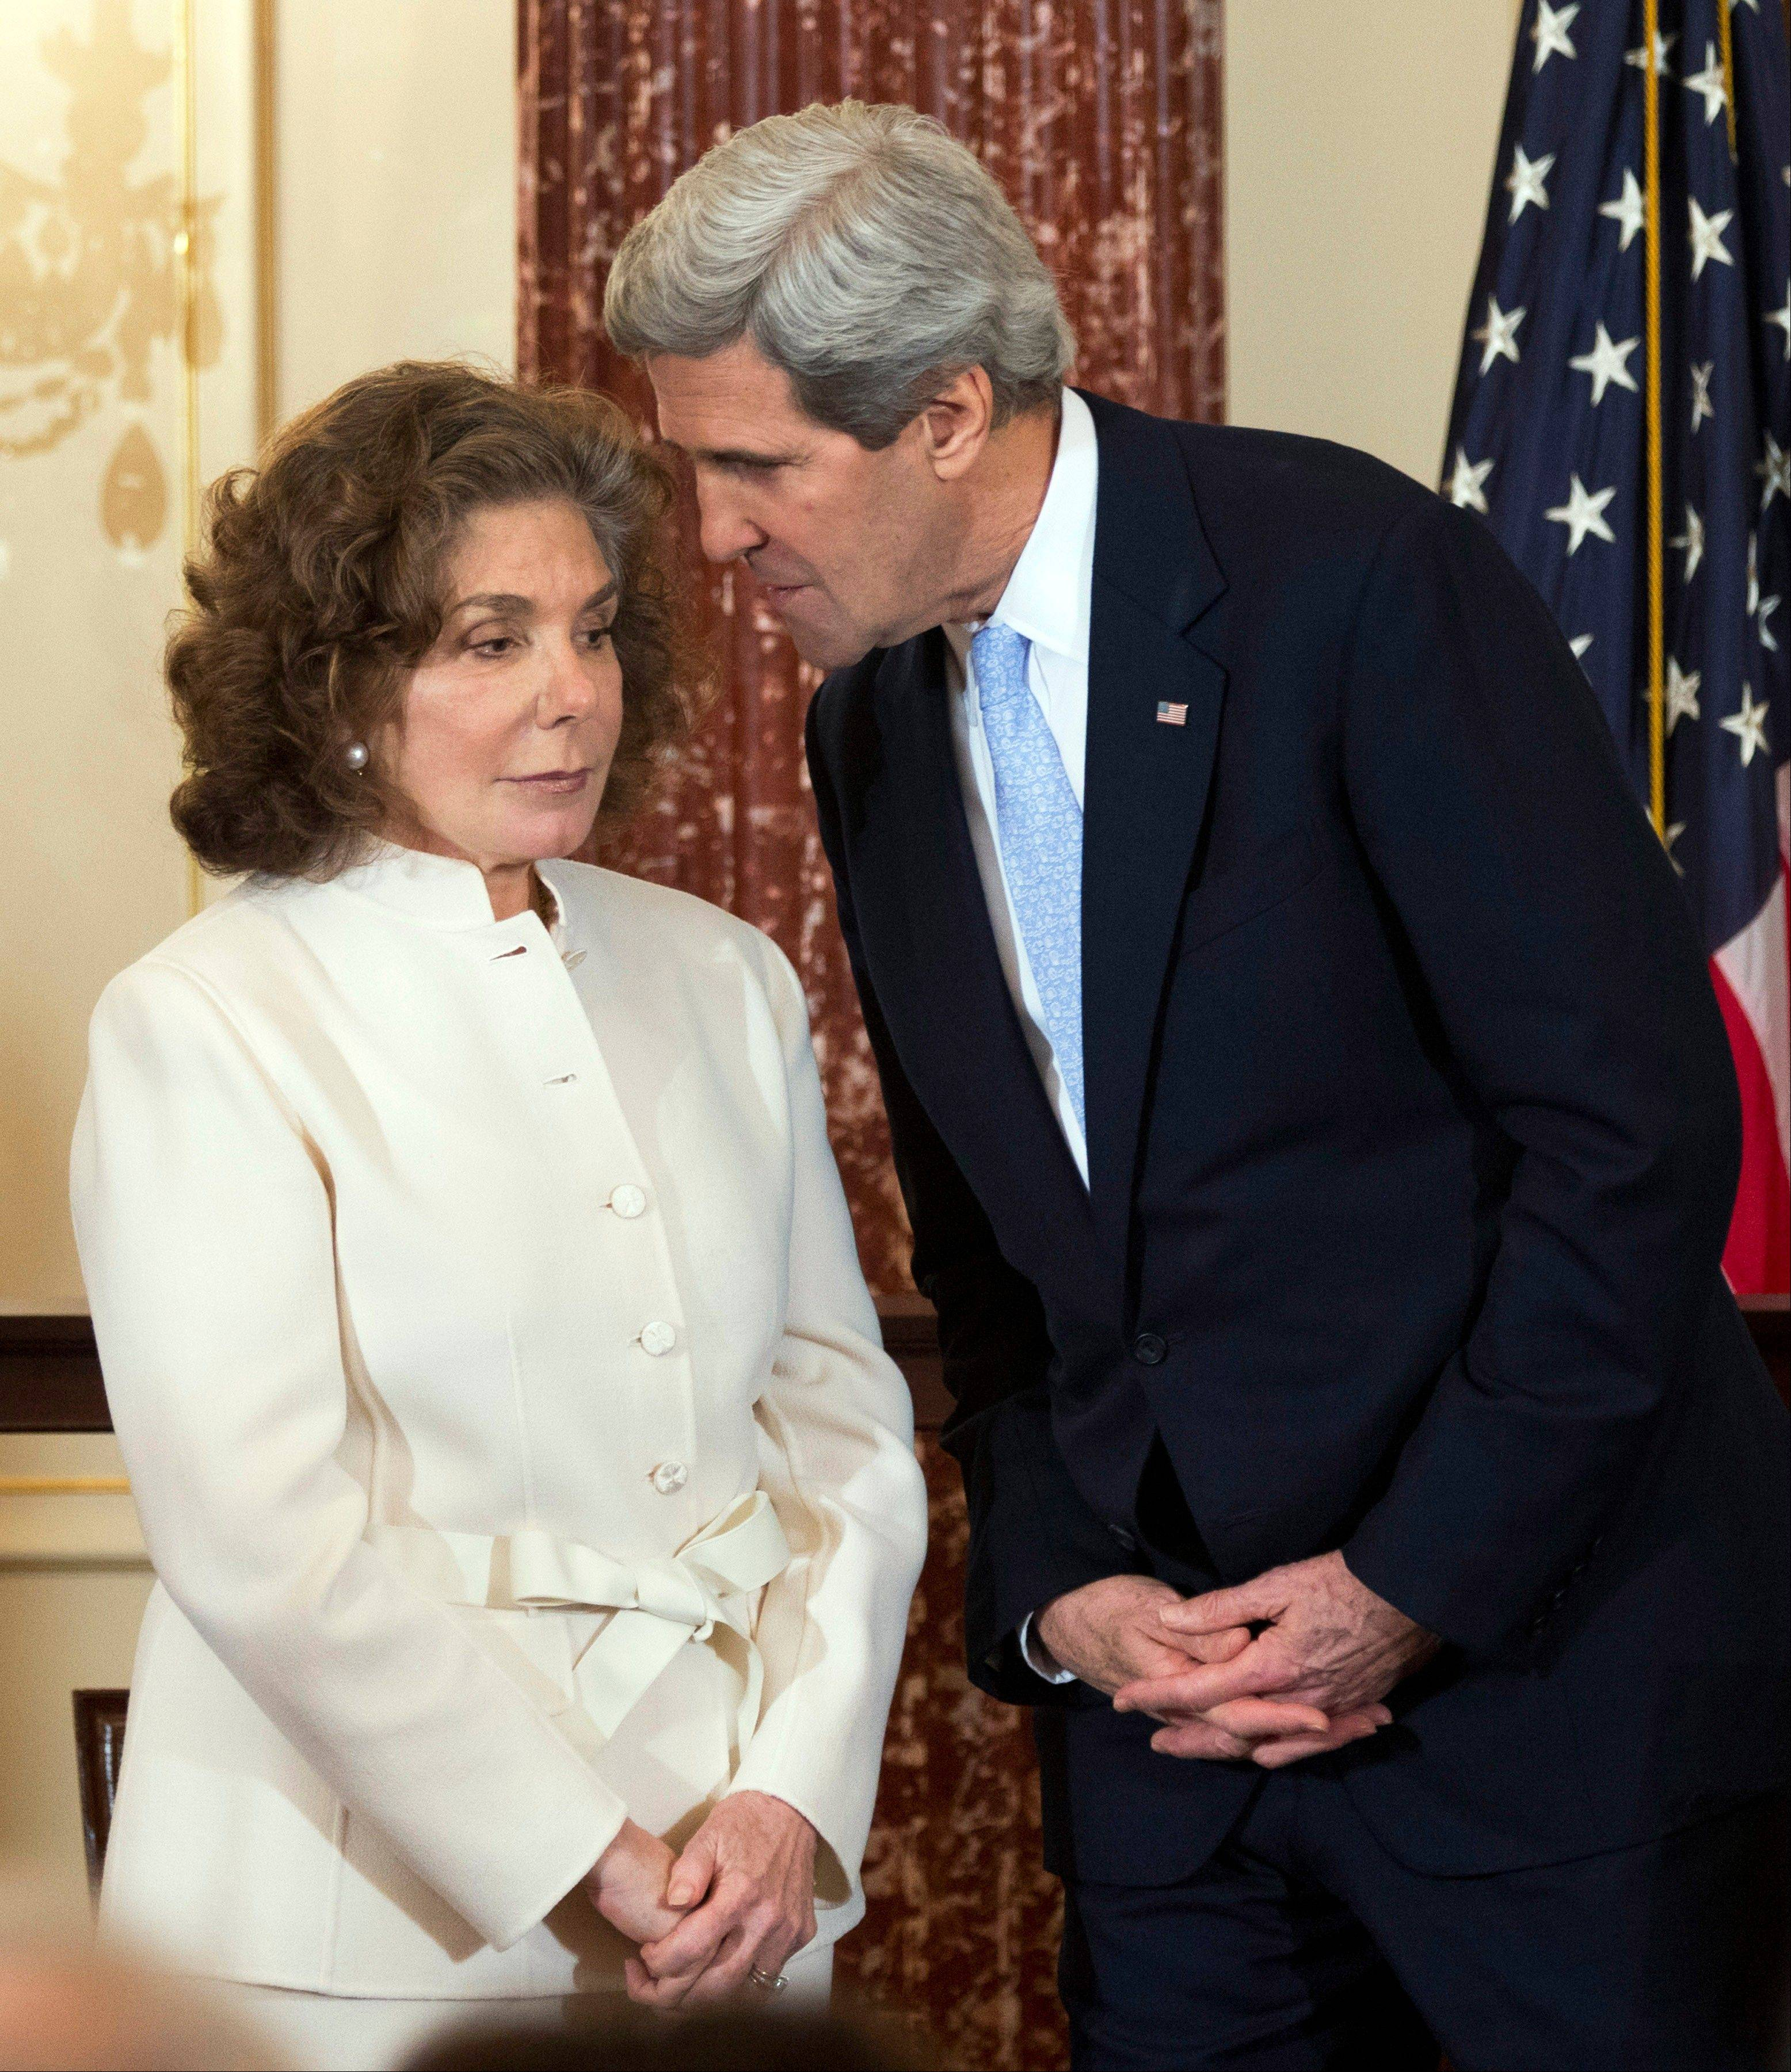 Secretary of State John Kerry, right, whispers to his wife, Teresa Heinz Kerry, during the ceremonial swearing-in for him as the 68th secretary of state at the State Department in Washington. A hospital spokesman says Teresa Heinz Kerry, the wife of U.S. Secretary of State John Kerry, is hospitalized Sunday in critical but stable condition.